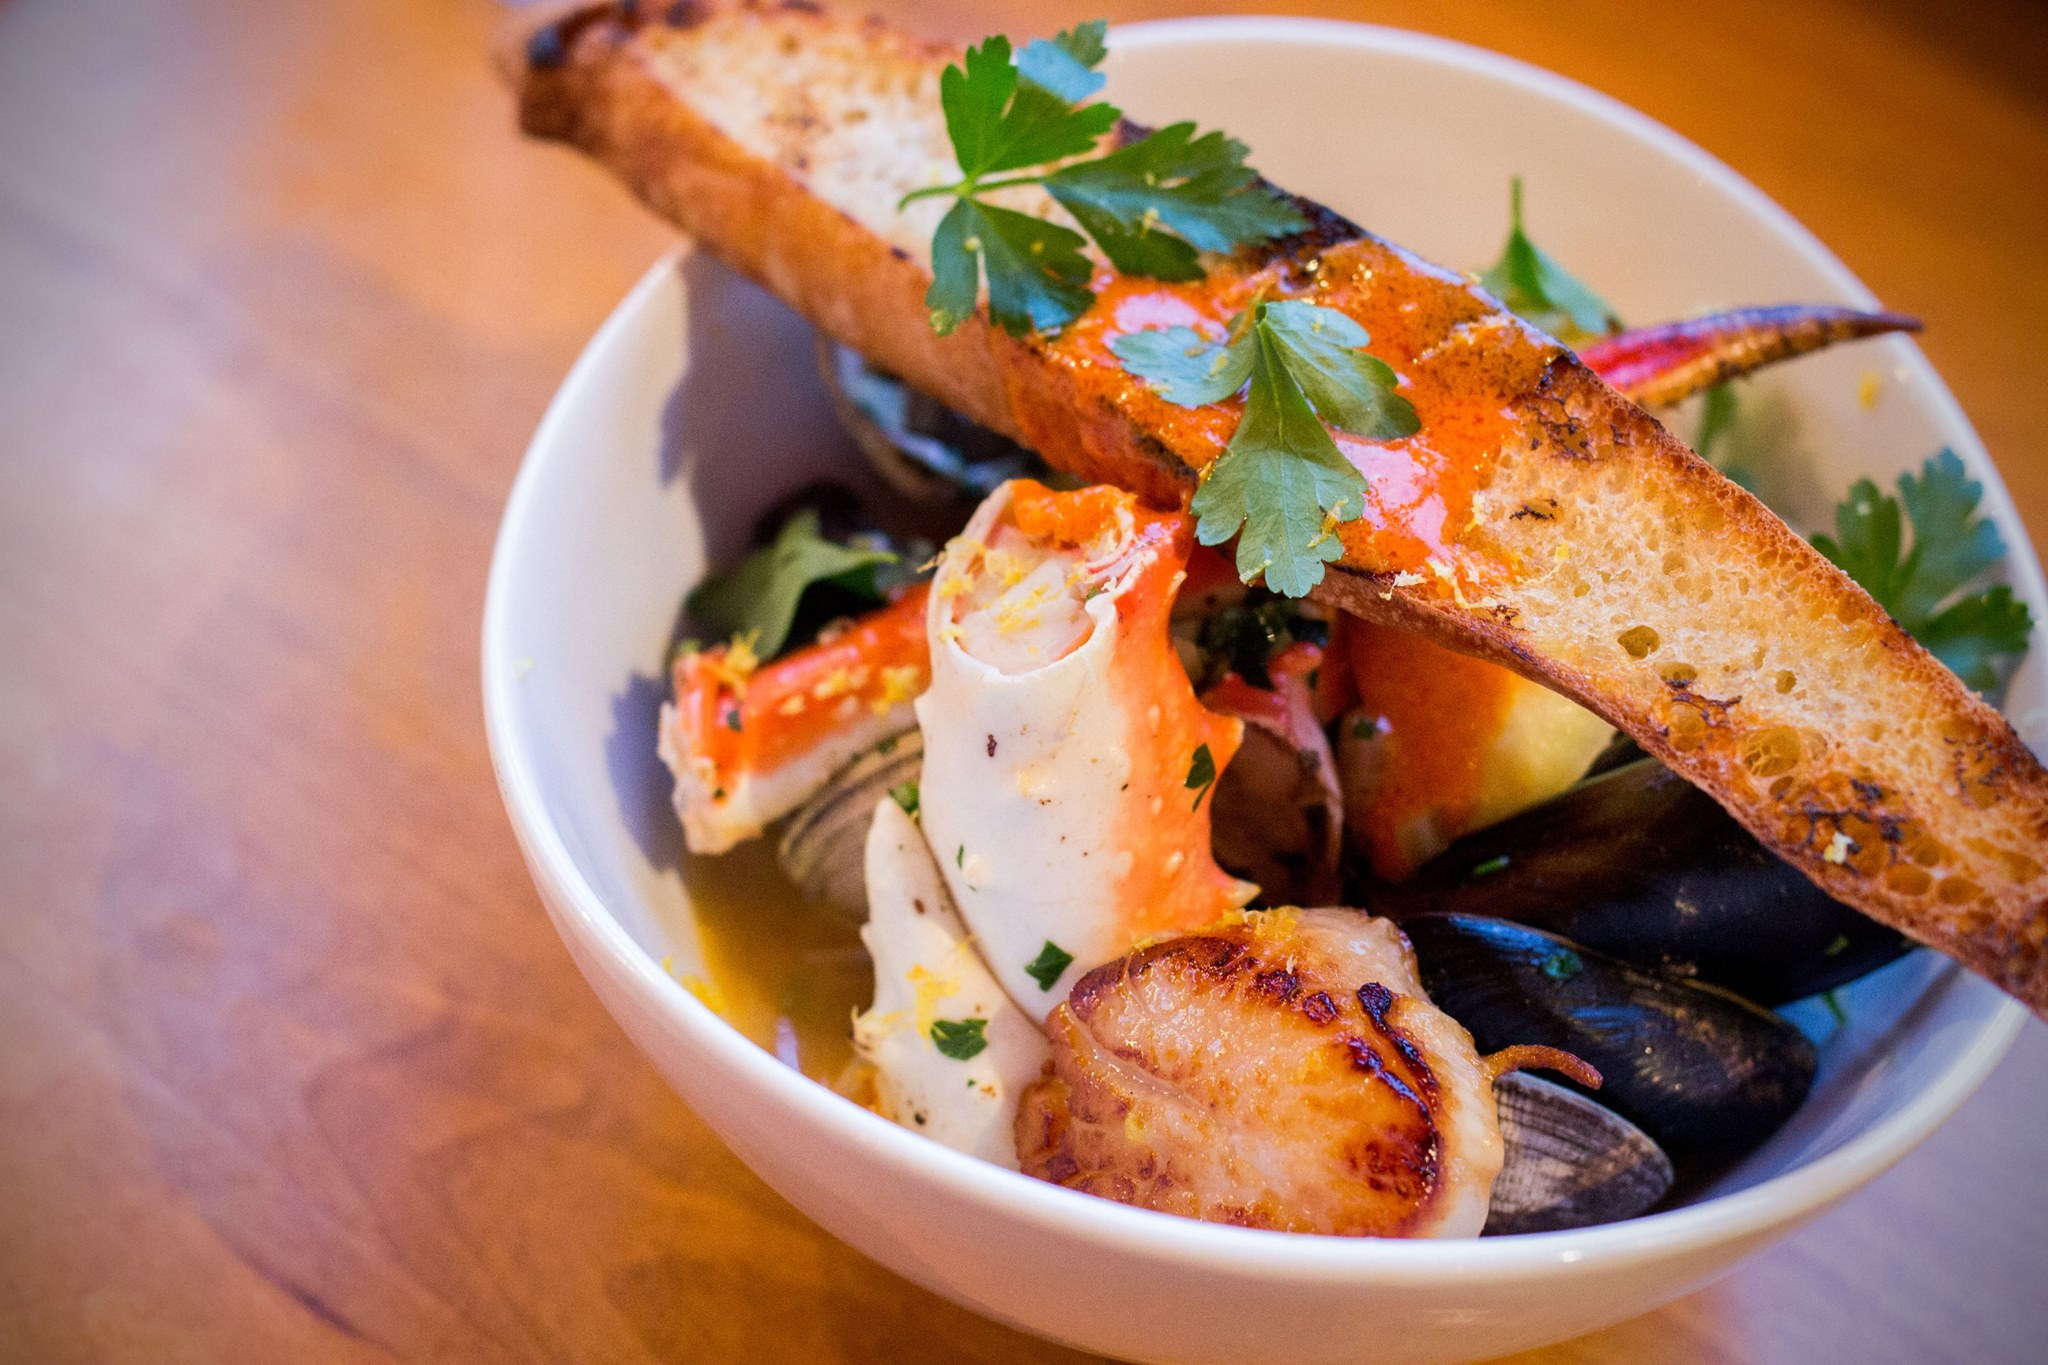 The freshest seafood available in Seattle can be found in the Seafood Stew from Matt's in the Market.  The deeply flavored seafood stew is comprised of local shellfish, fin fish, tomatoes, olives, and caper berries which showcases all the flavors the Puget Sound has to offer. (Image: Matt's in the Market)